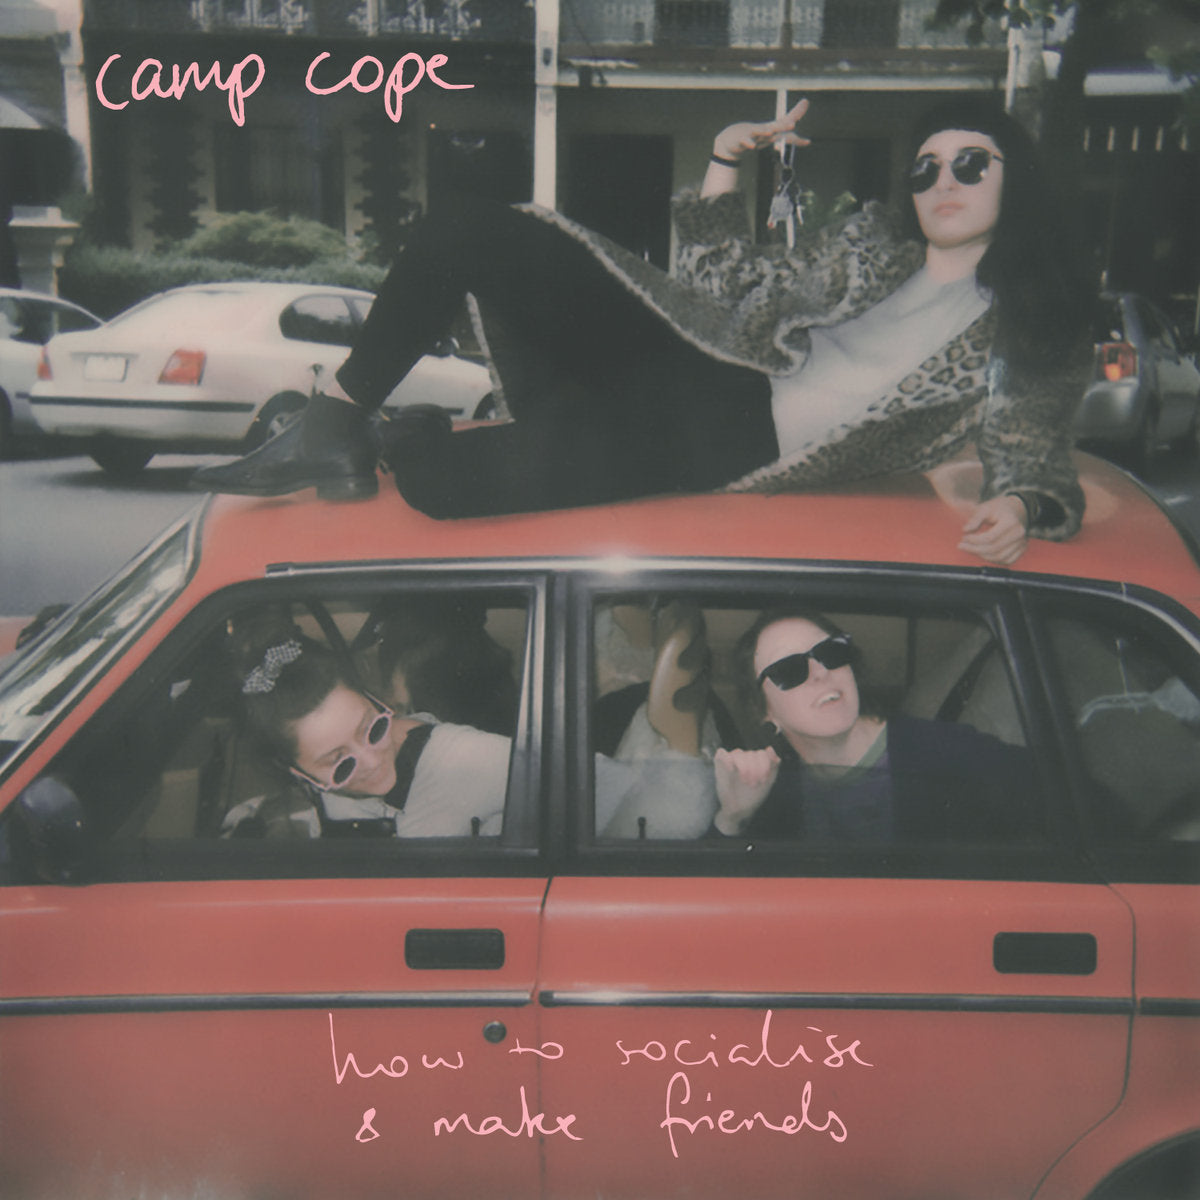 Camp Cope - How to Socialise & Make Friends LP